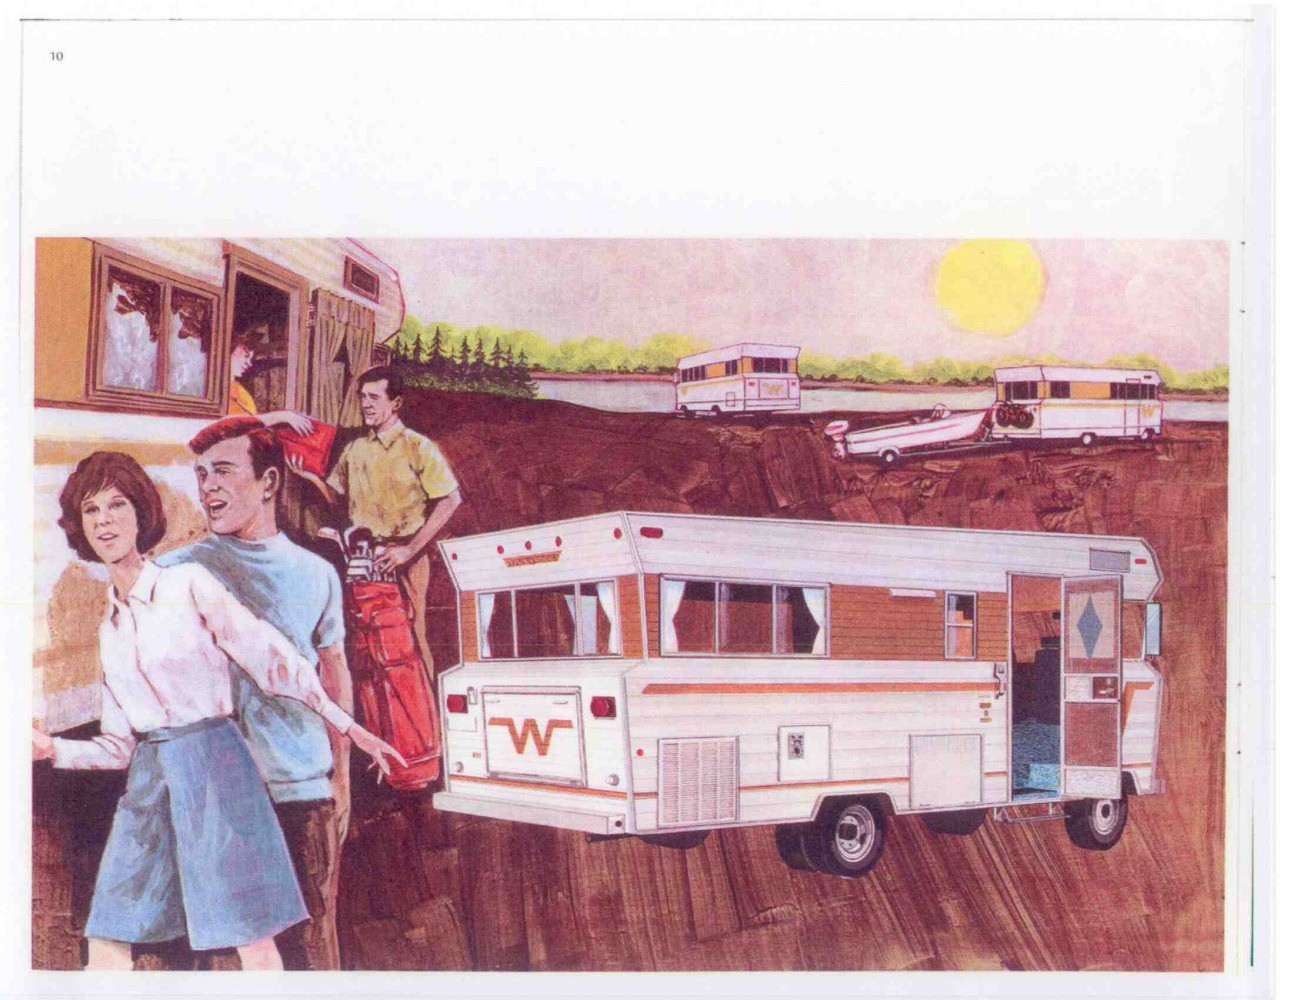 Winnebago Sales Brochure, 1969: 'For People Who Love to Live